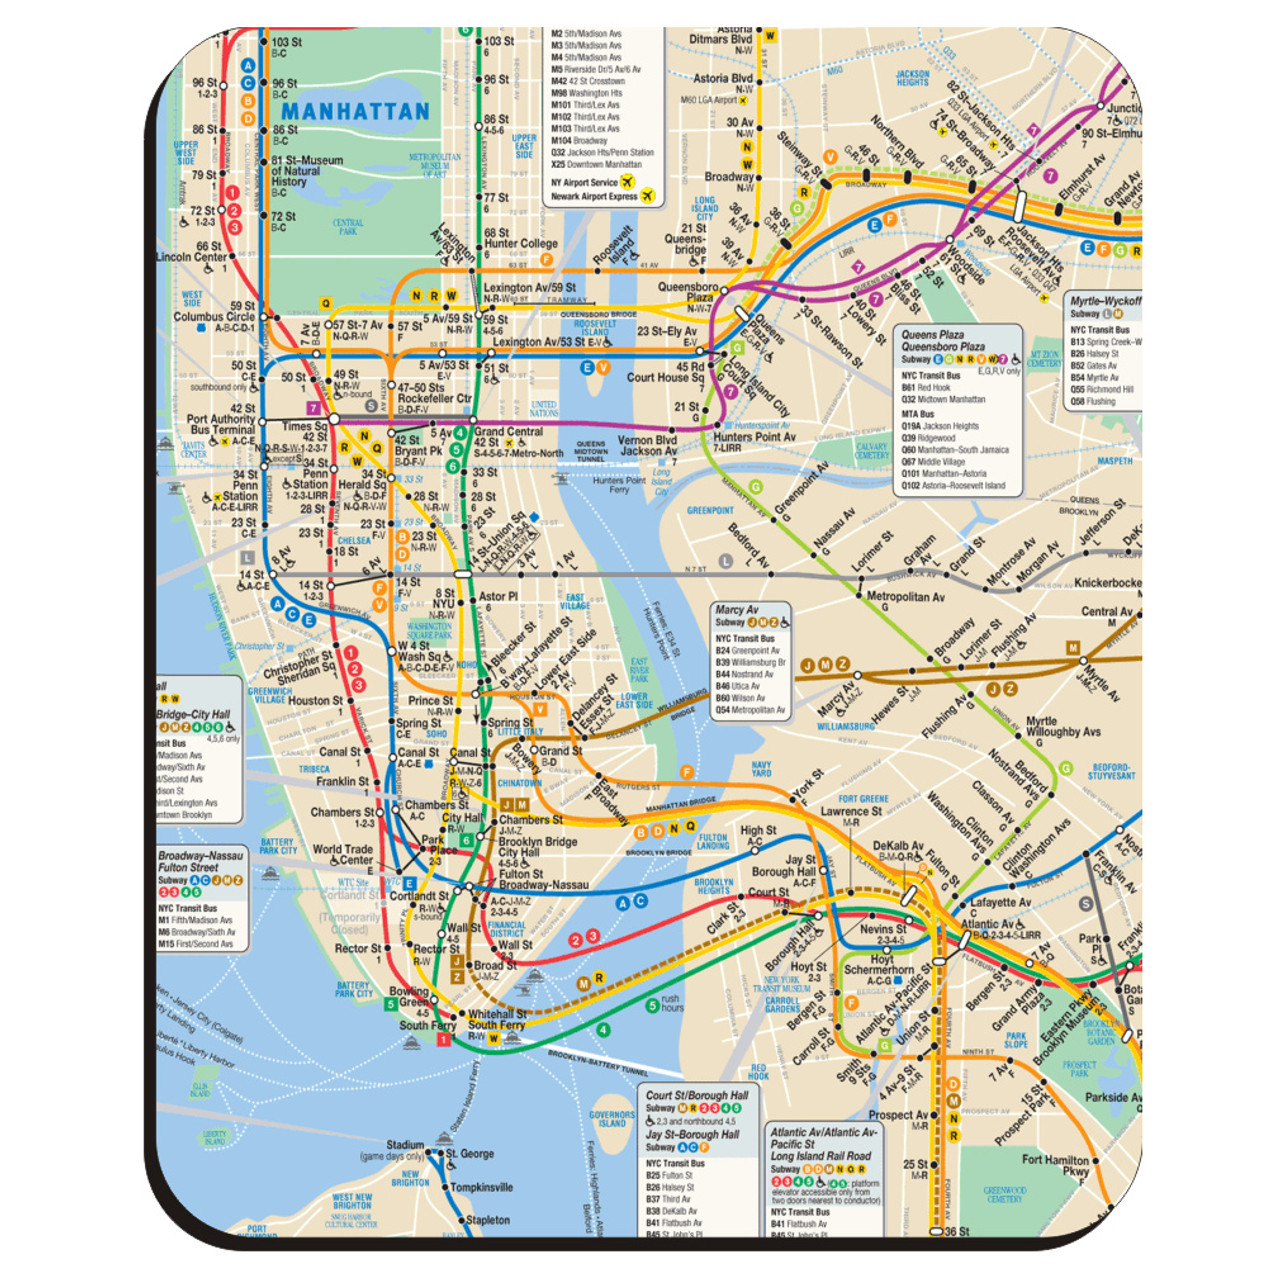 Manhattan Mta Mini Subway Map And Address Finder.New York City Subway Mouse Pad